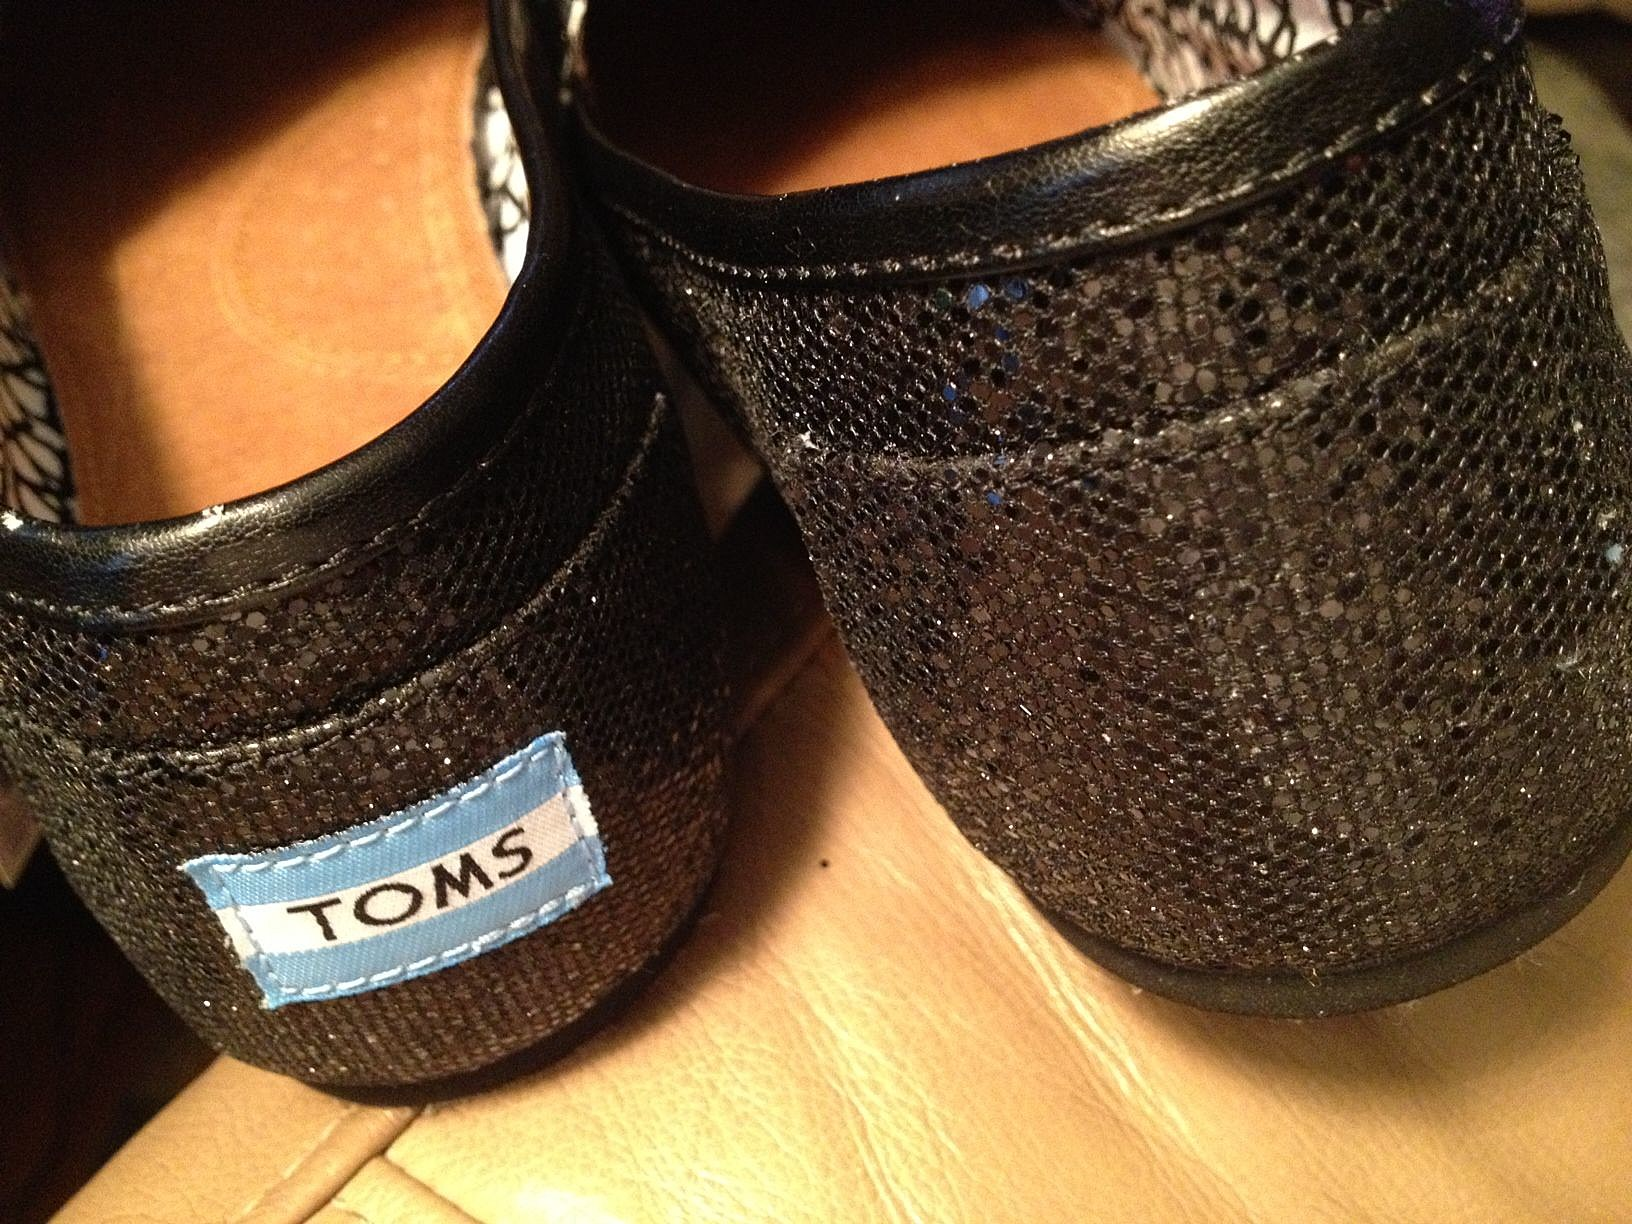 b2cc046ce09 How to Remove the Label from Your Toms Shoes